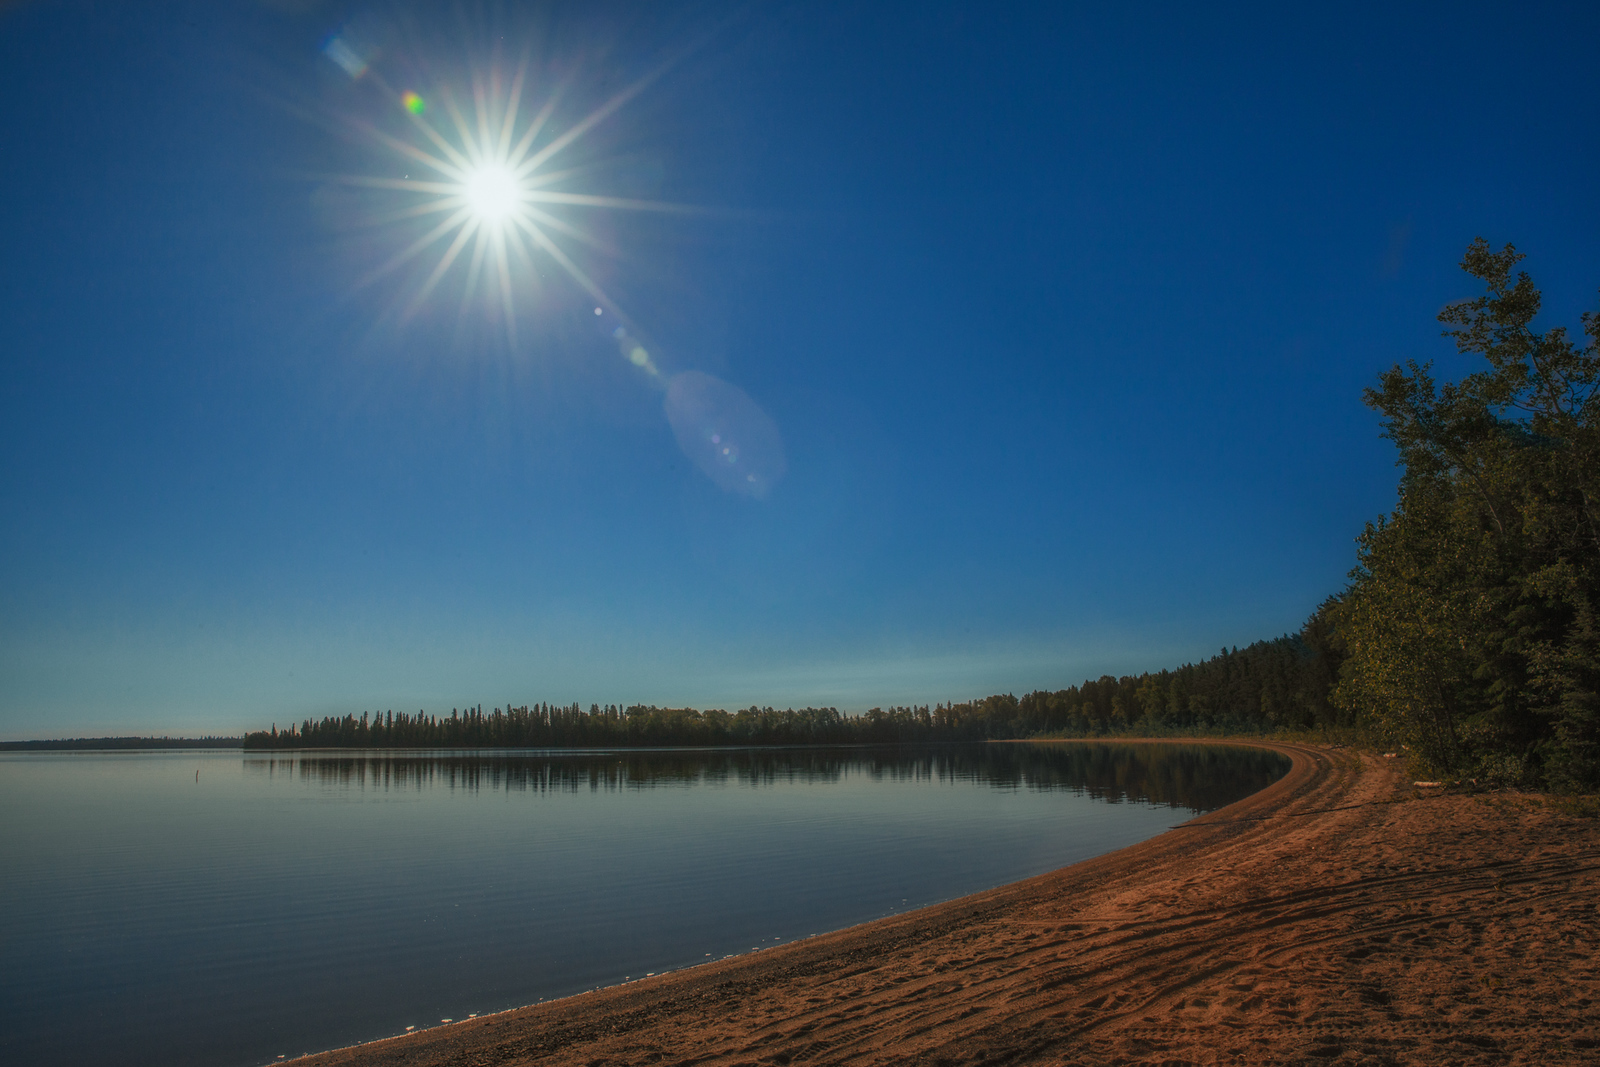 A Perfect day to get on the water in Northern Ontario.